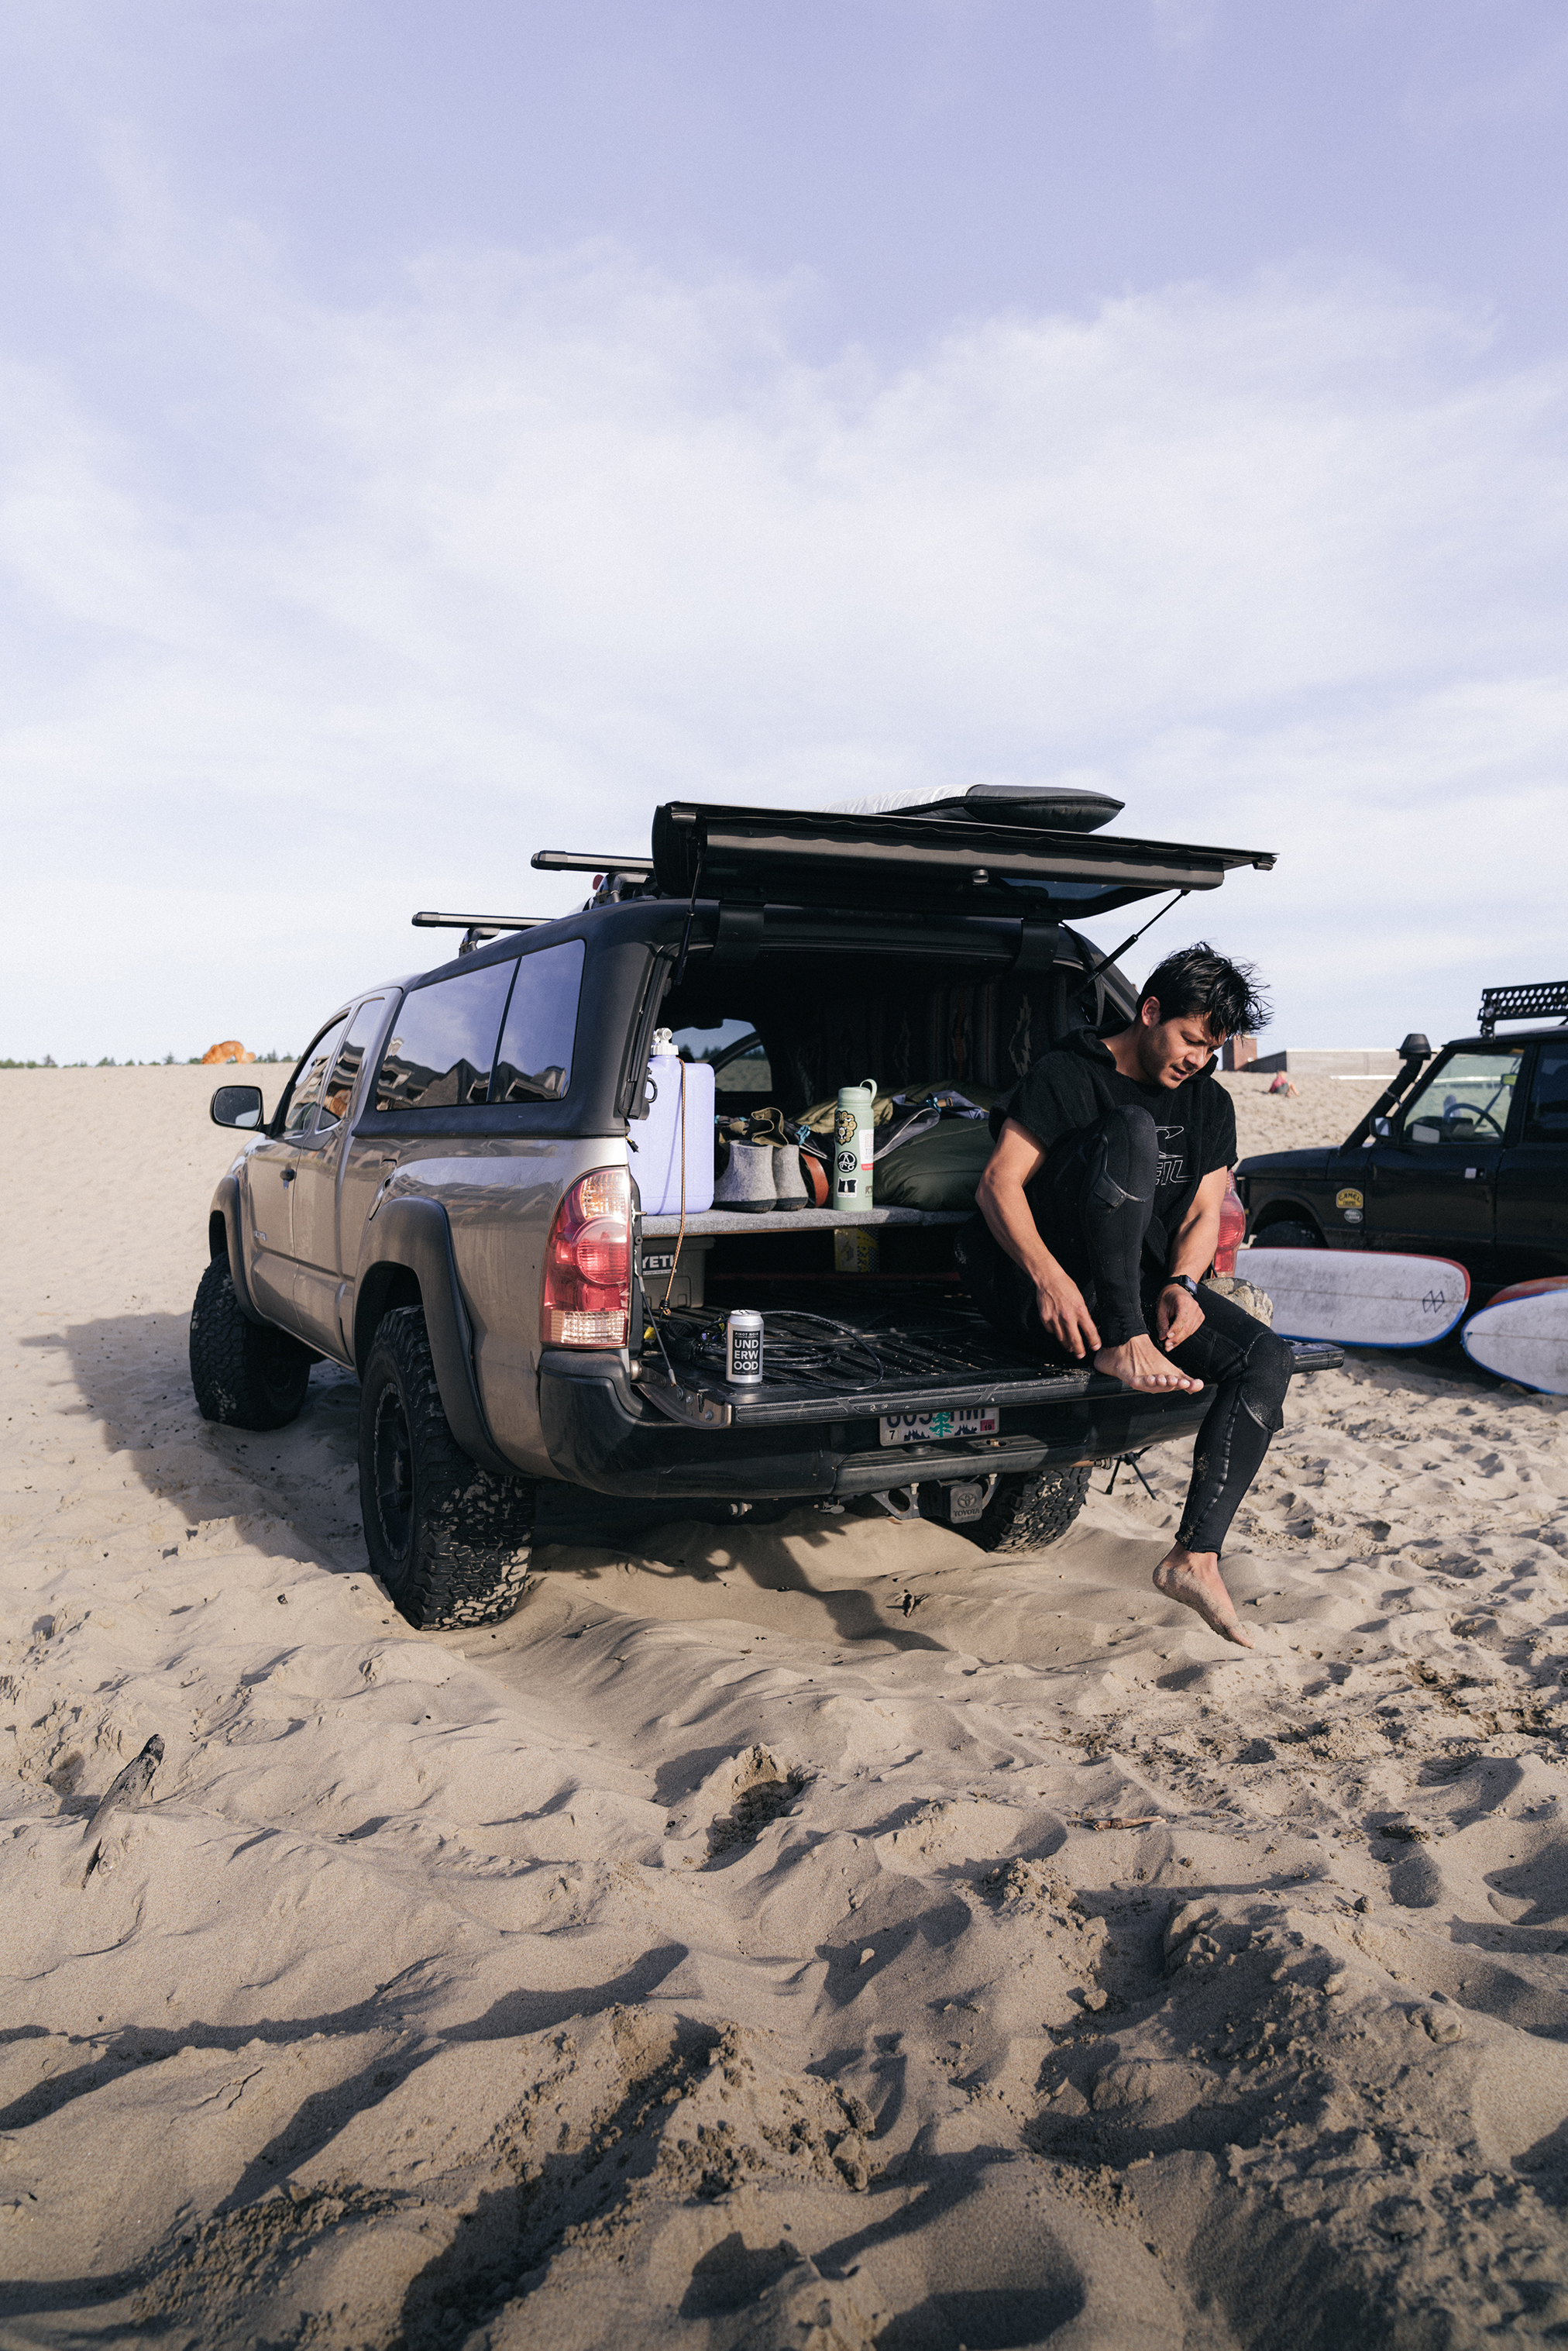 Union Wine Co Surf Trip